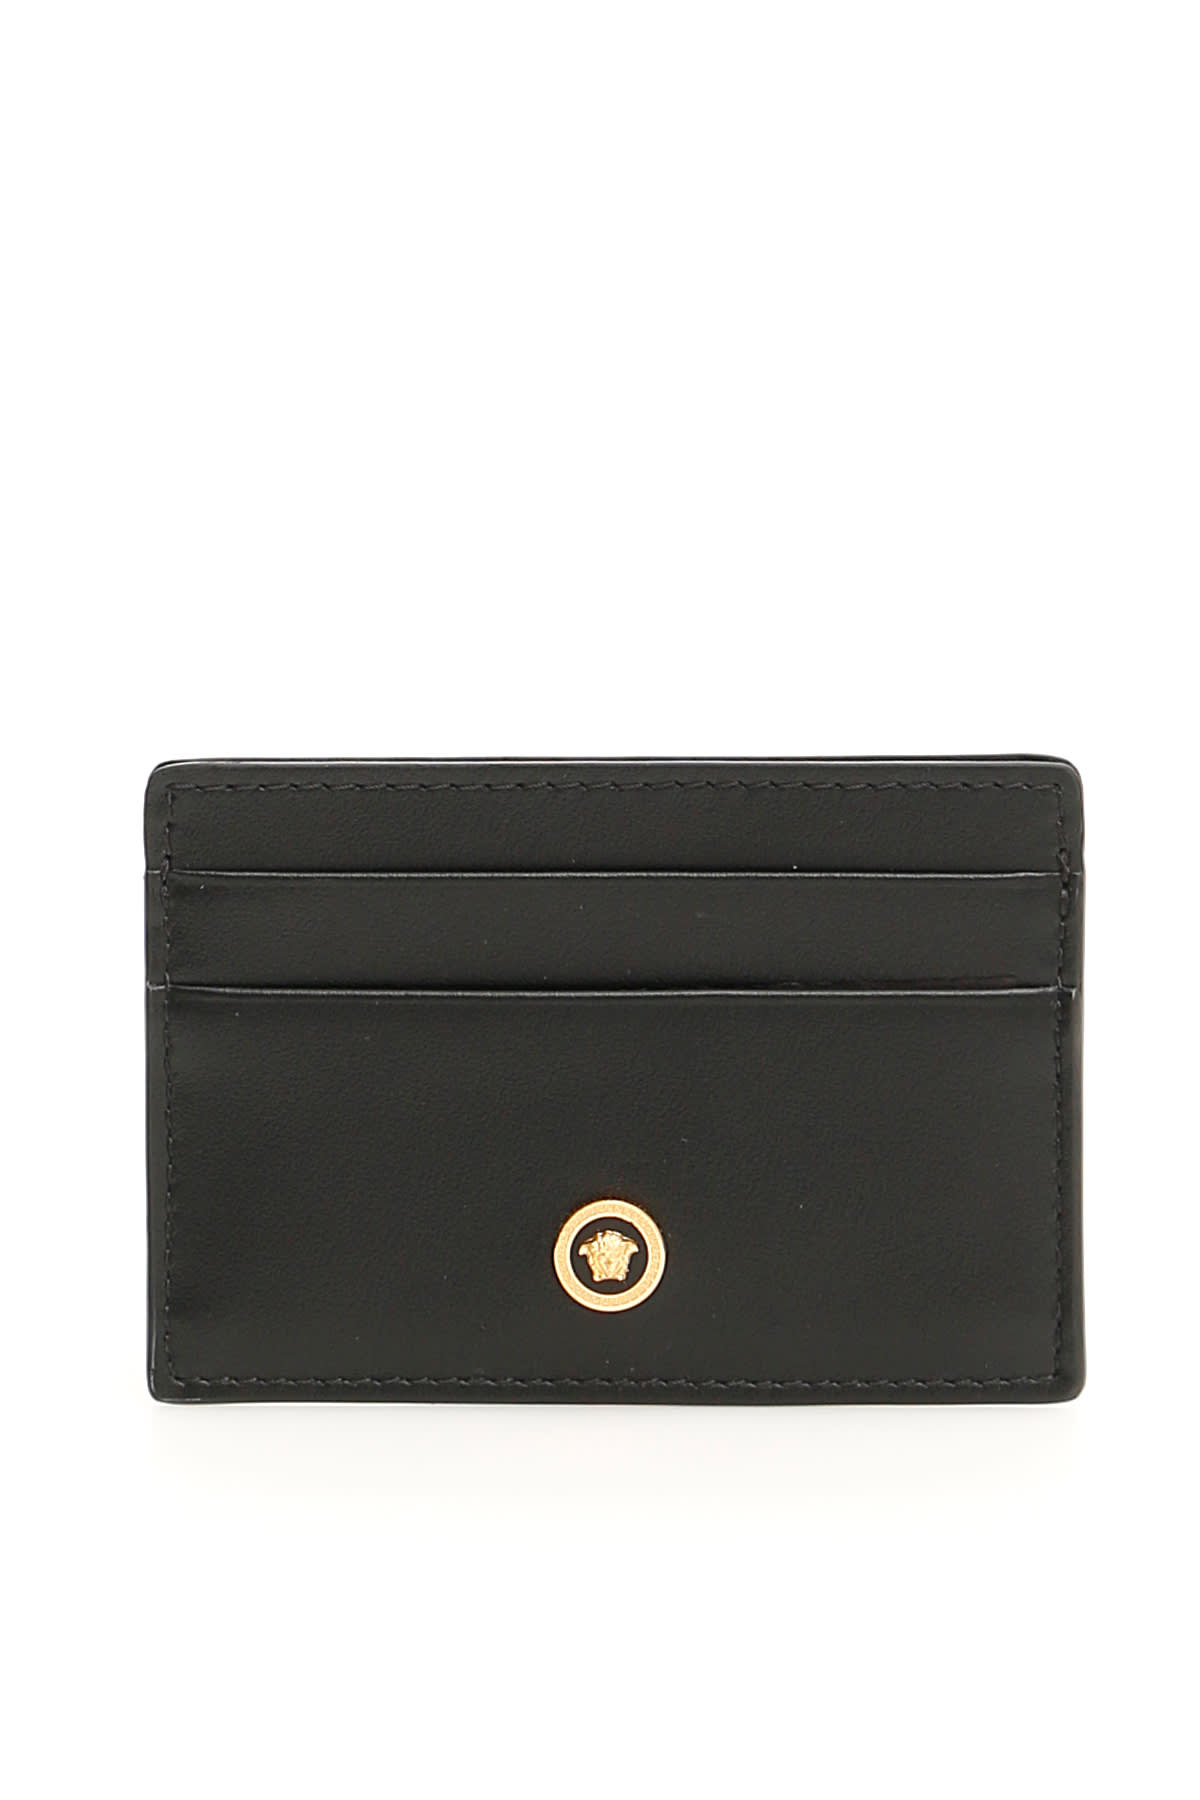 Versace LEATHER CARDHOLDER